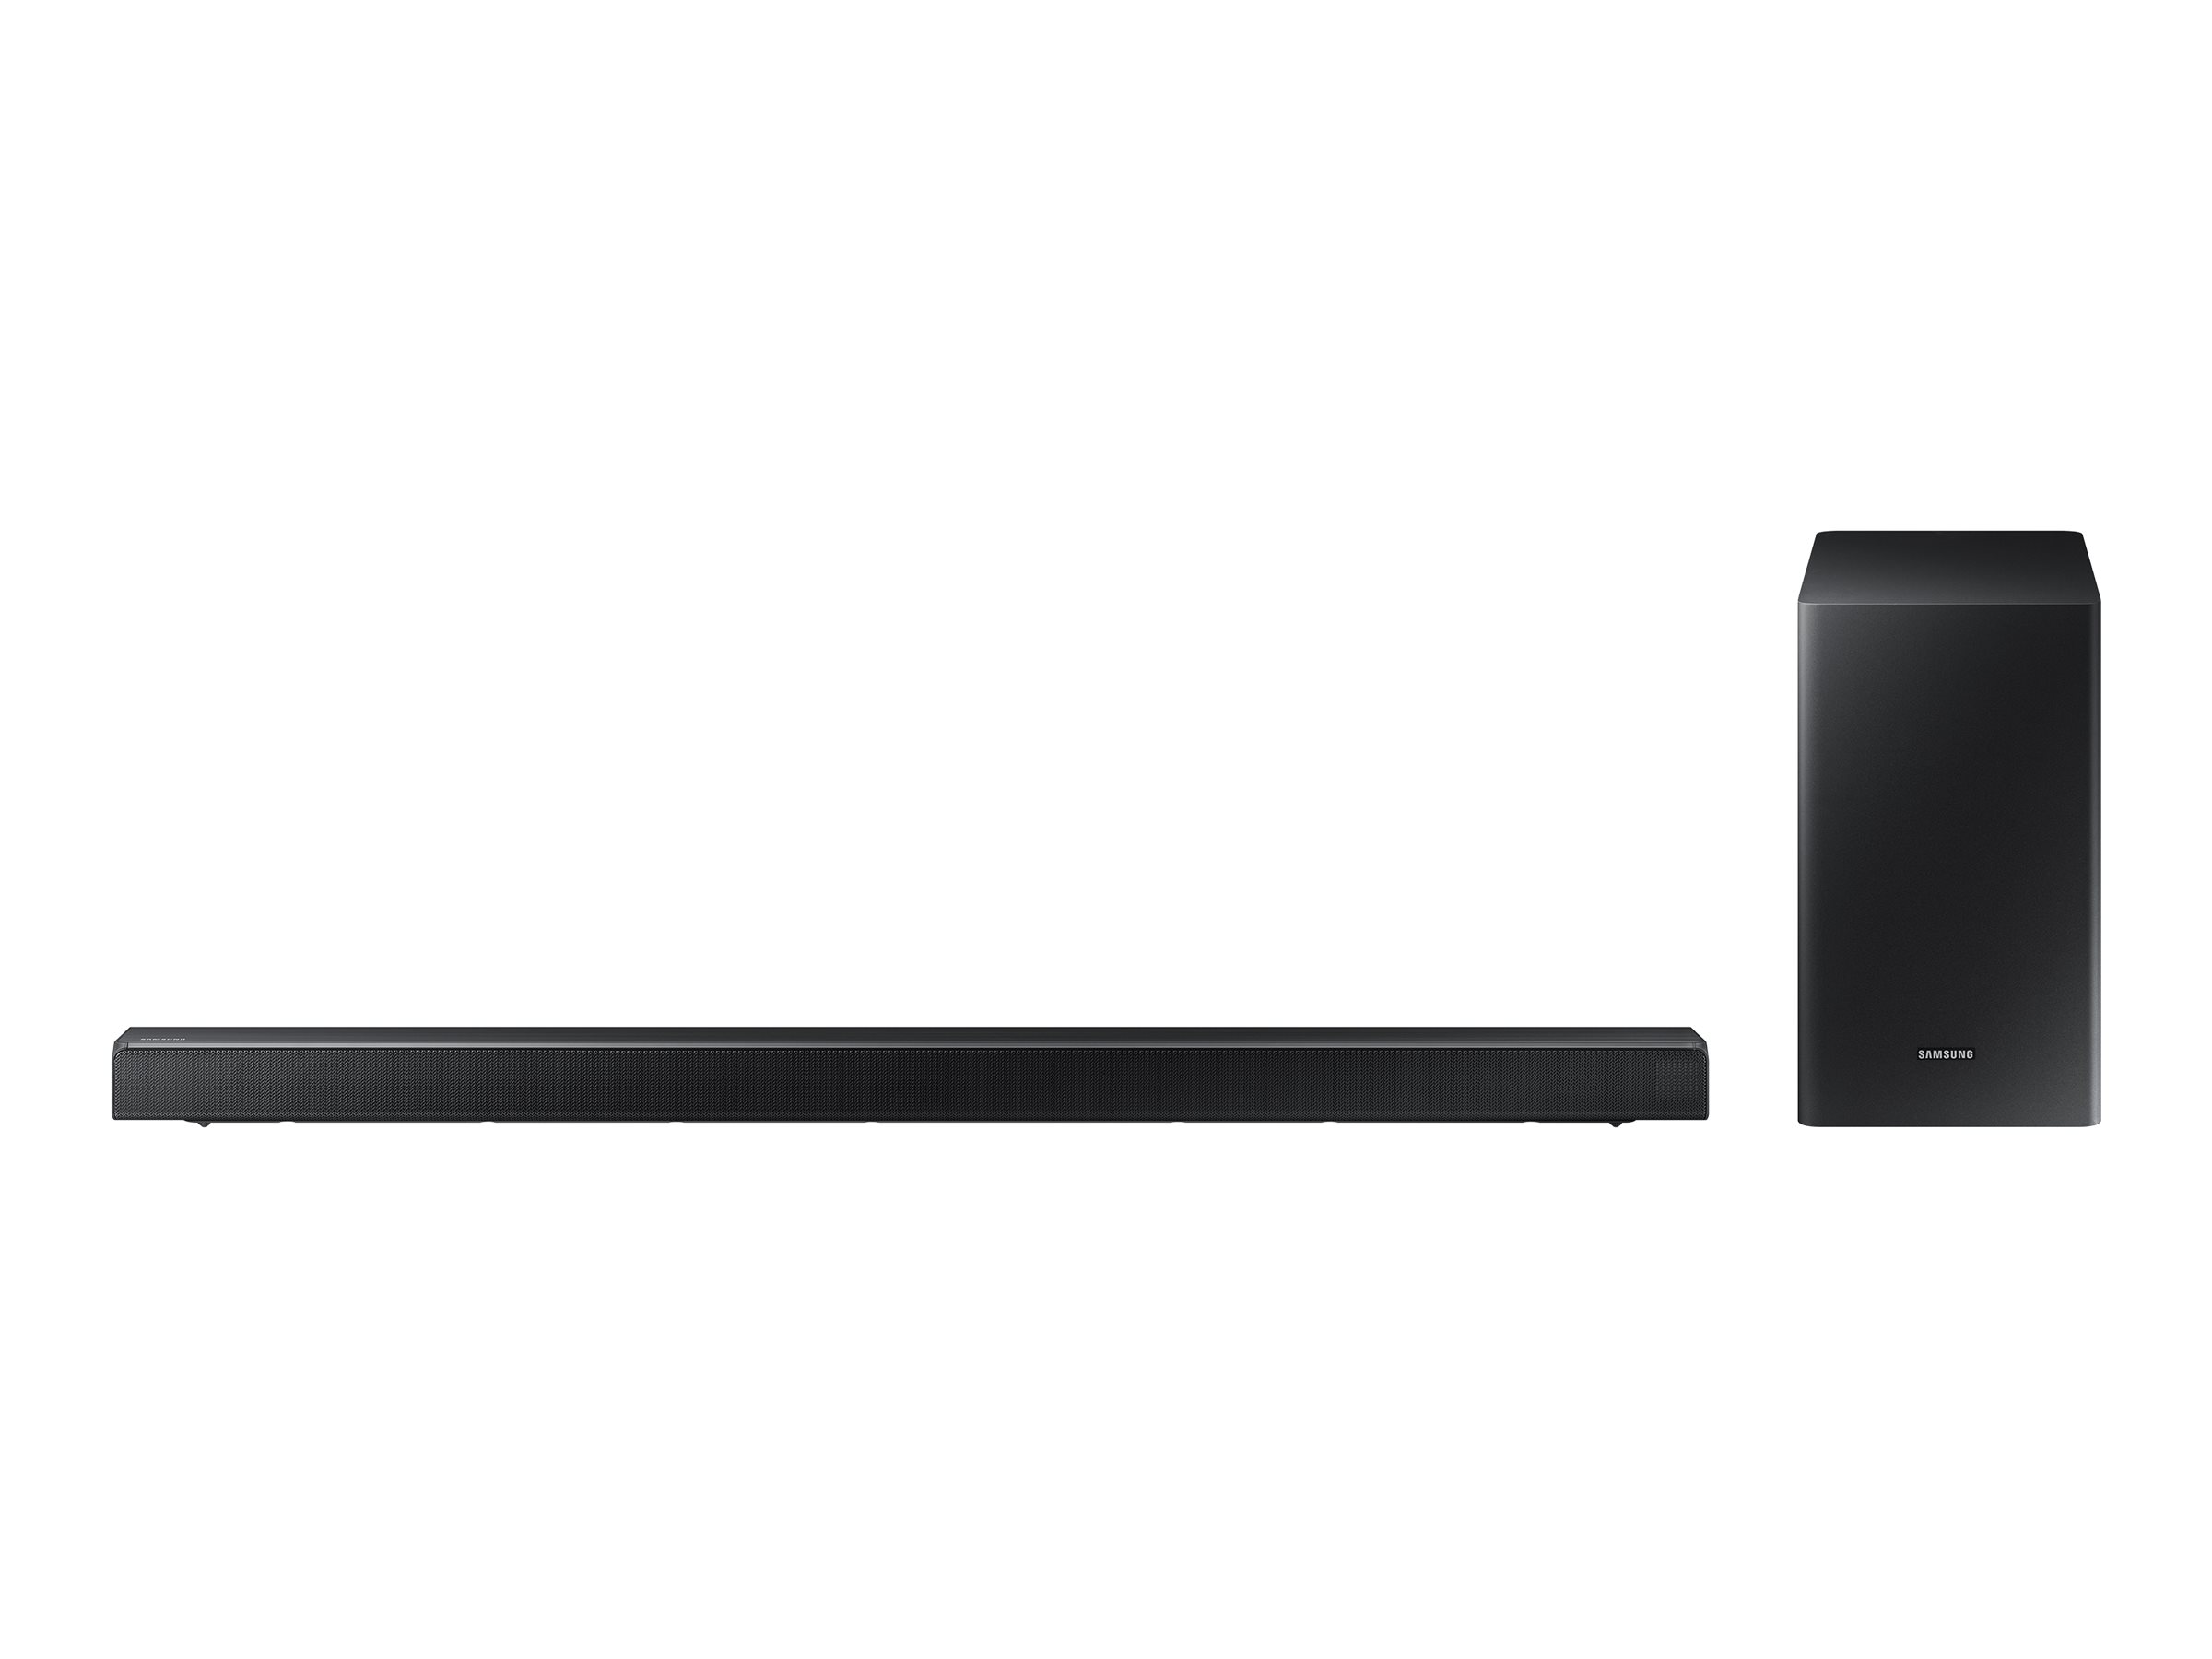 Samsung HW-R650 - sound bar system - for home theater - wireless